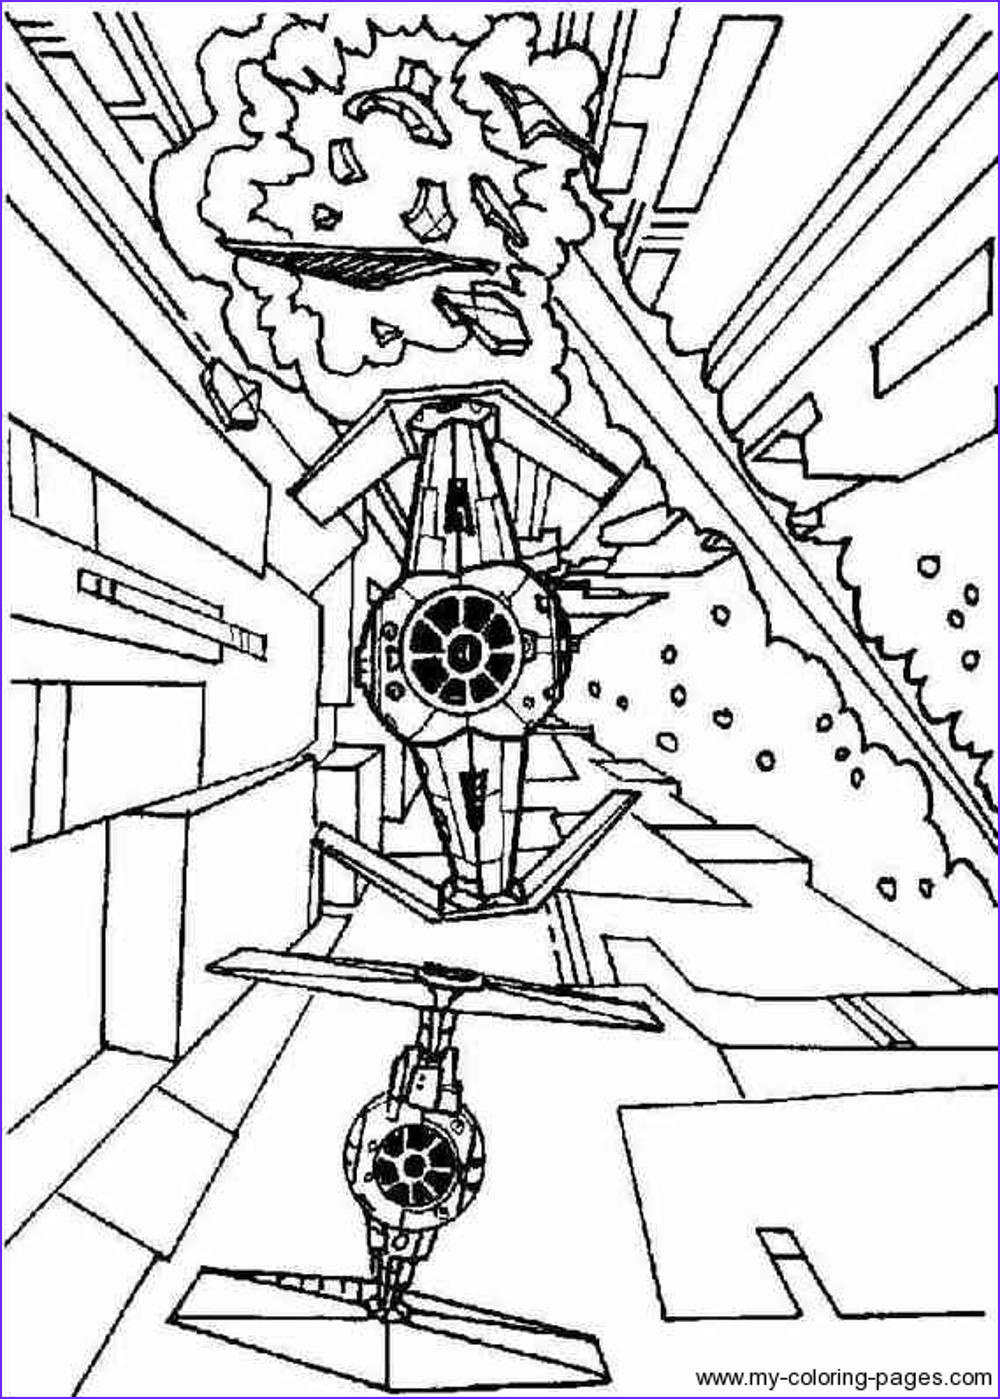 Lego Star Wars Coloring Best Of Stock Lego Star Wars Coloring Pages Free